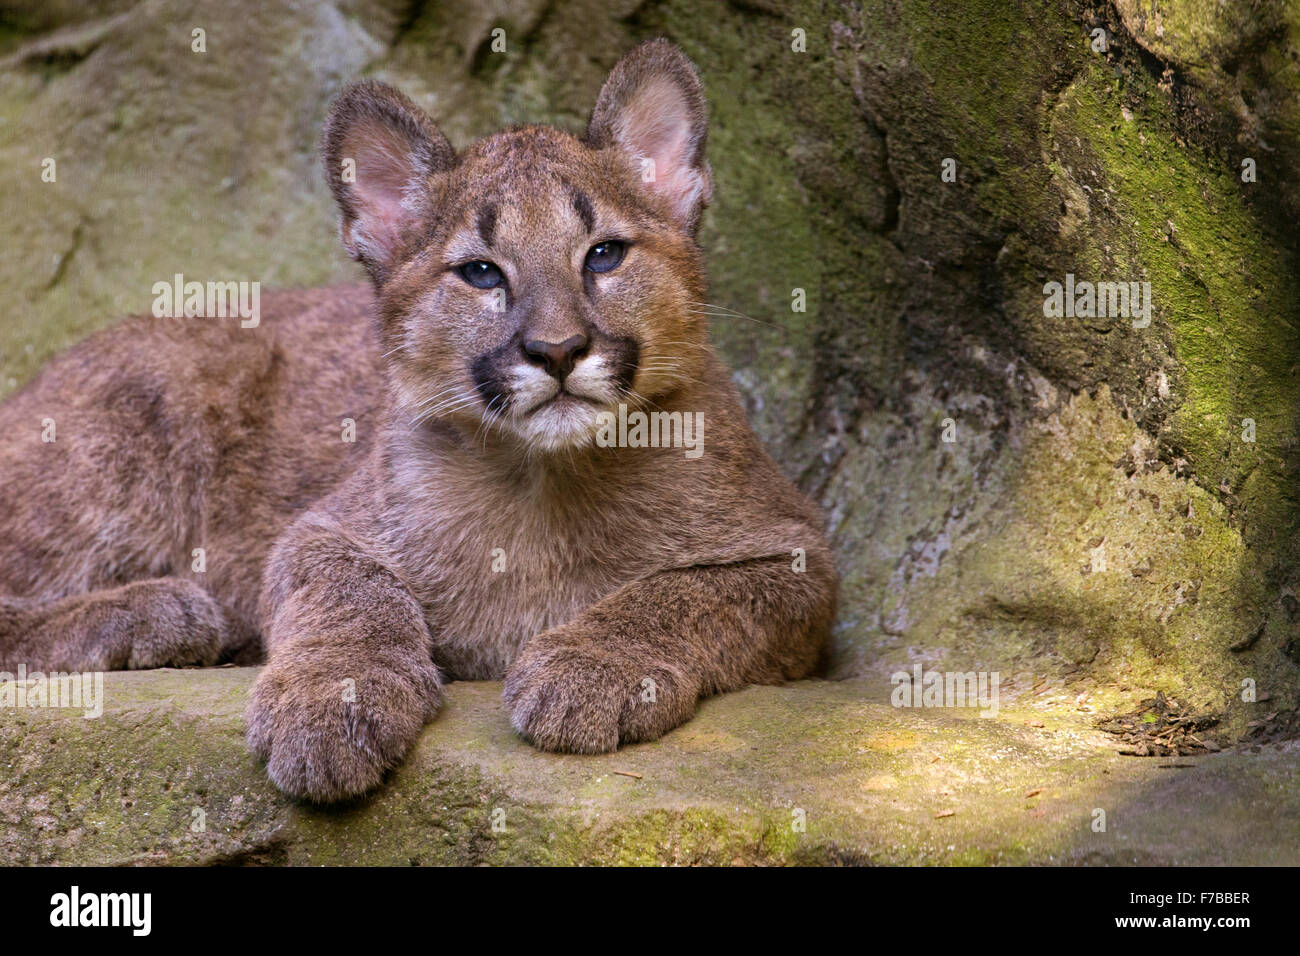 Puma cub, 3 months old. - Stock Image